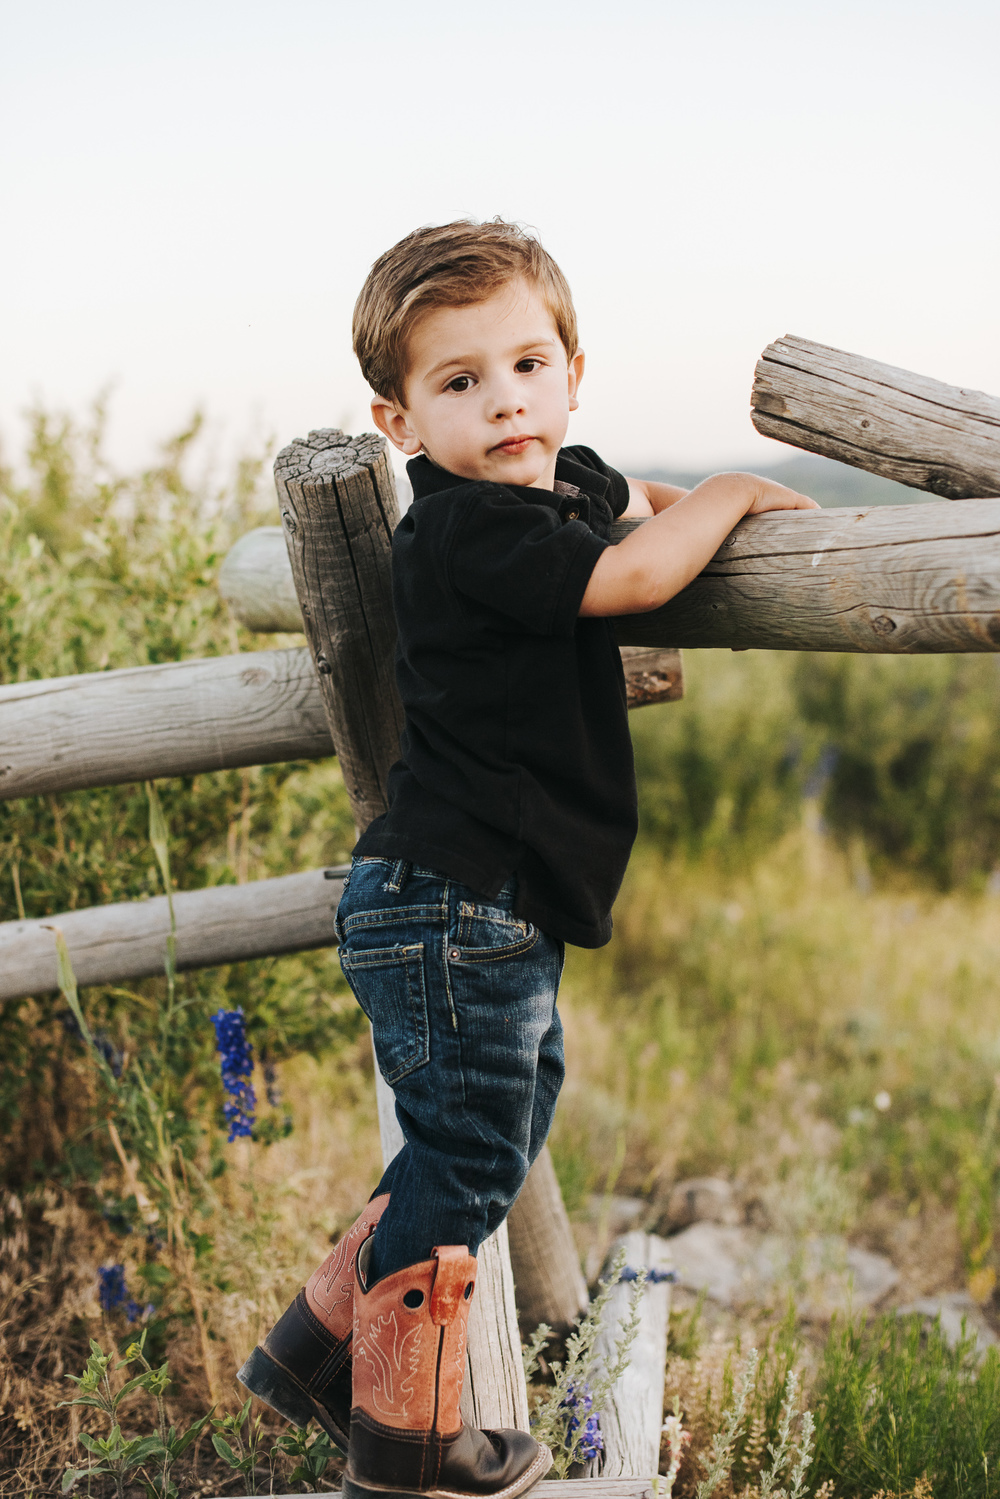 060716 webJAKE & MCKENNA FAMILY PHOTOS - COLORADO PHOTOGRAPHER - DEBI RAE PHOTOGRAPHY-5739.jpg